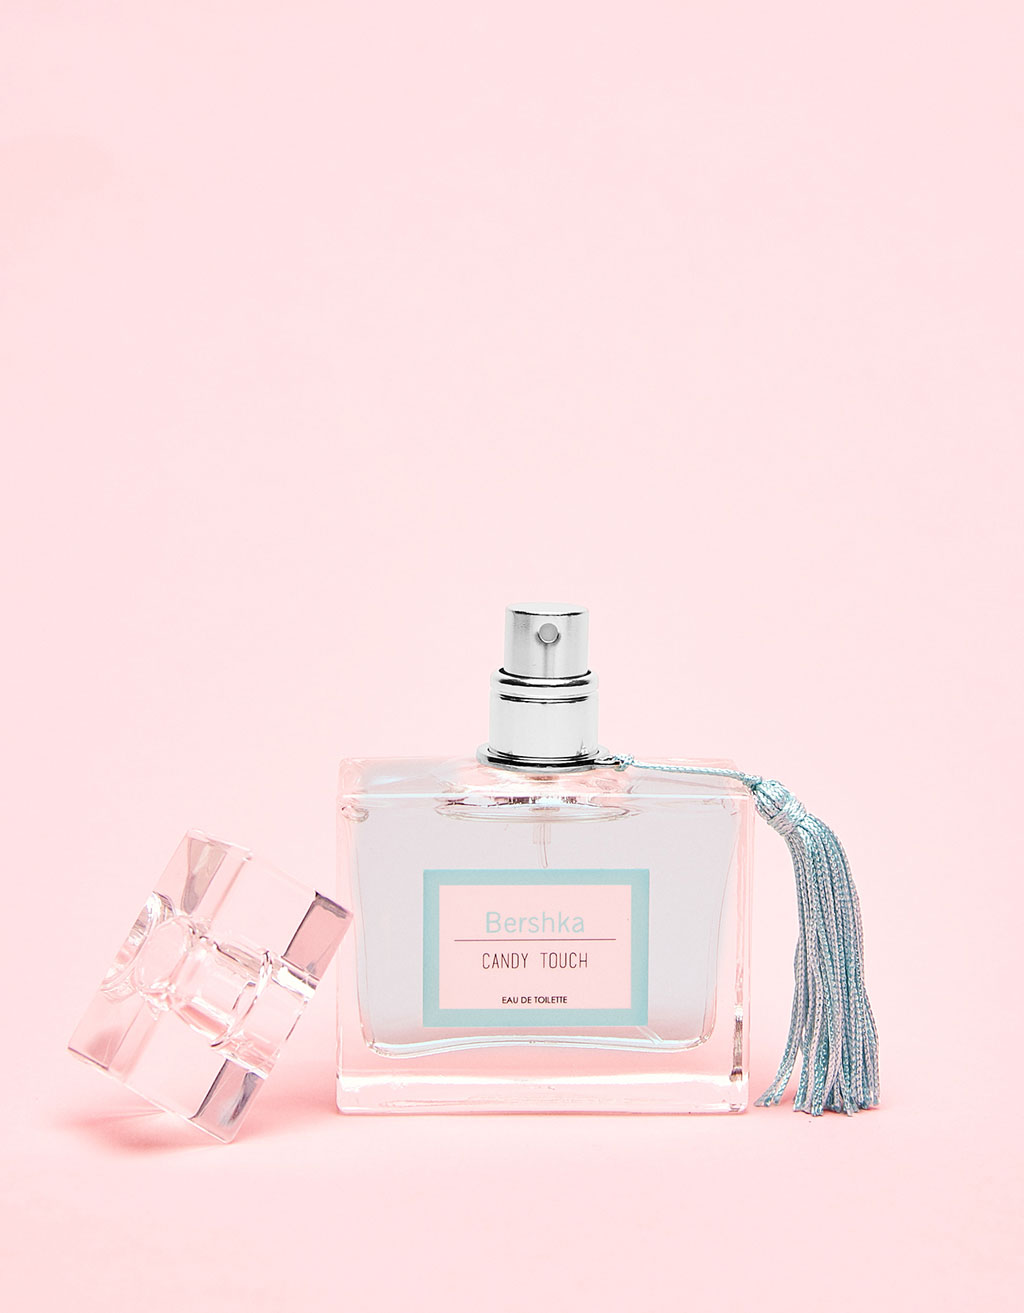 Eau de toilette candy touch